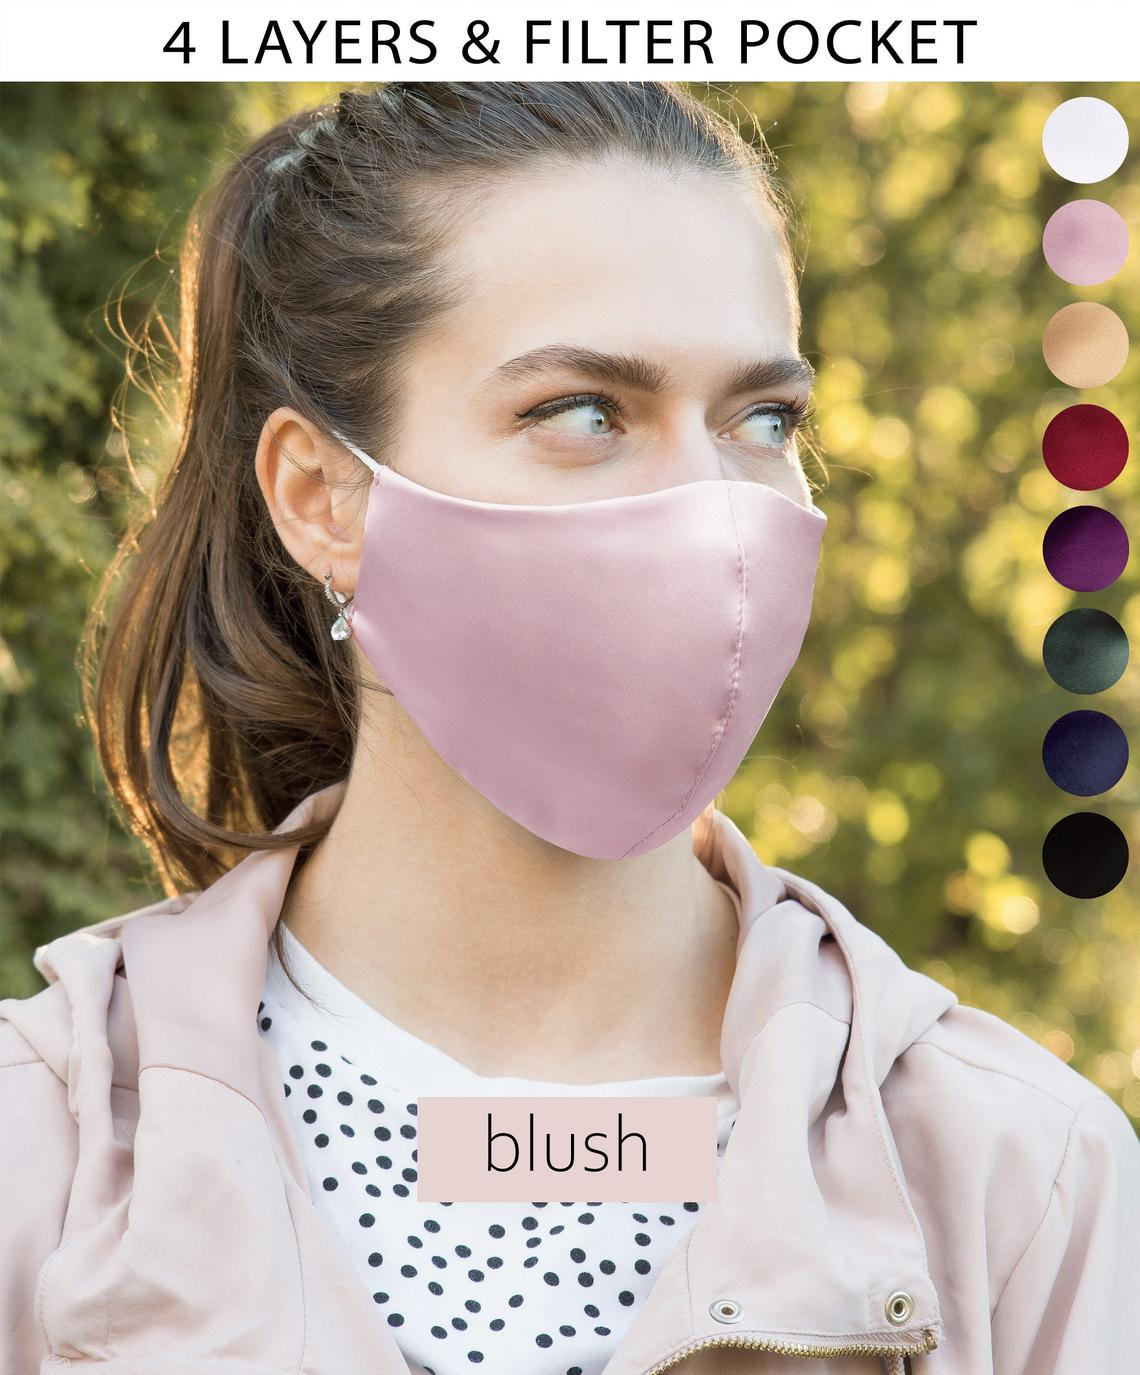 silk mask face covering  filter pocket 2.5 pm adjustable straps reusable washable bridal special occassion